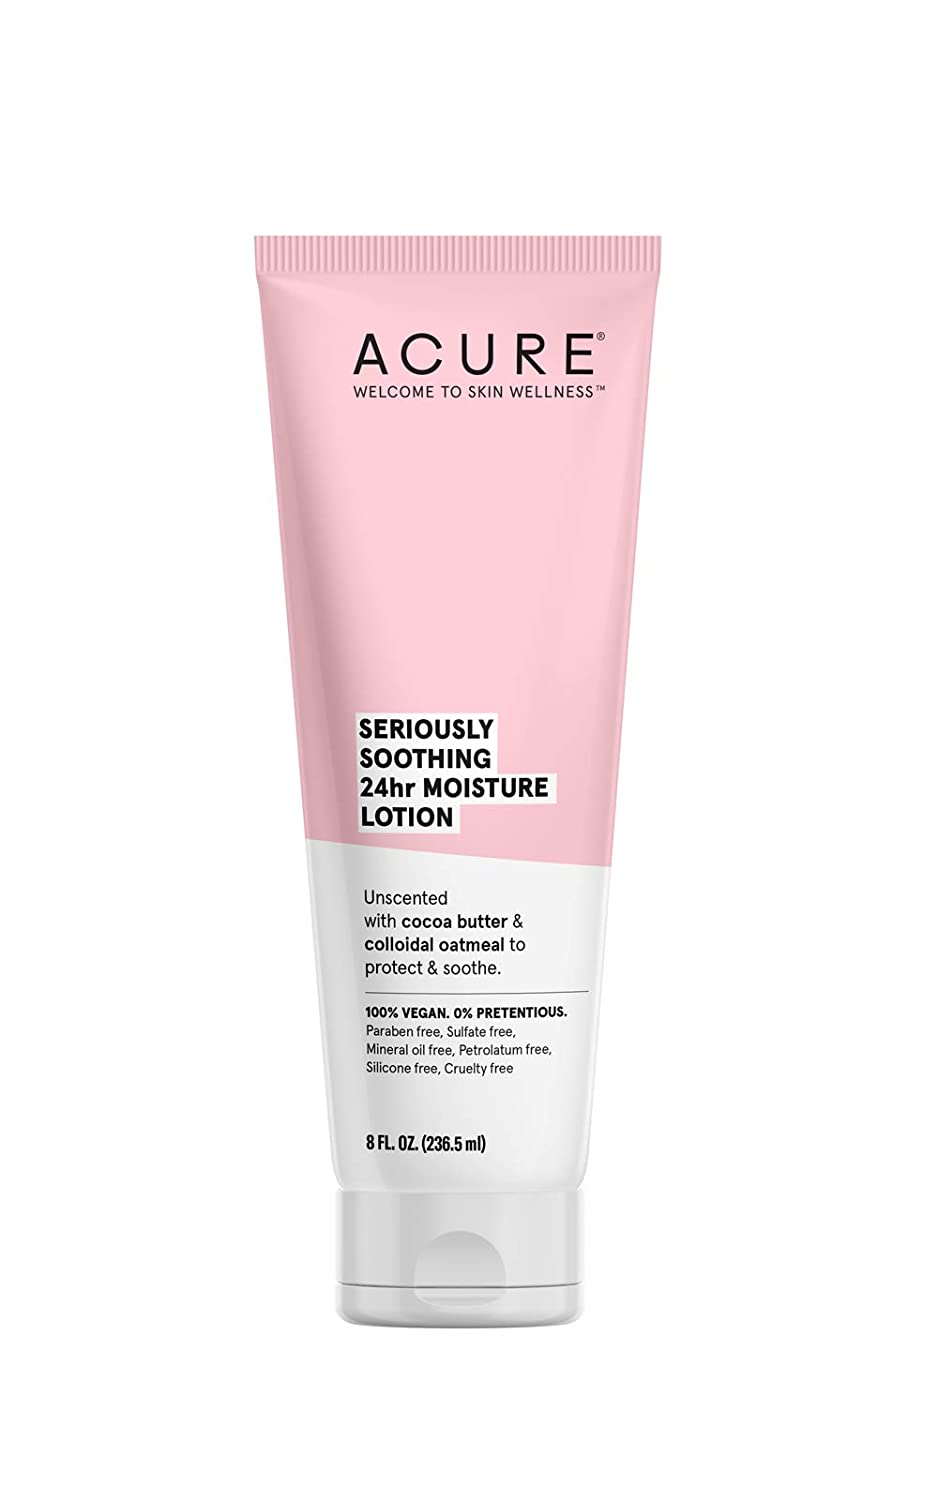 ACURE Seriously Soothing 24Hr Moisture Lotion | 100% Vegan | For Dry to Sensitive Skin | Cocoa Butter & Colloidal Oatmeal - Unscented, Soothes & Moisturizes | 8 Fl Oz